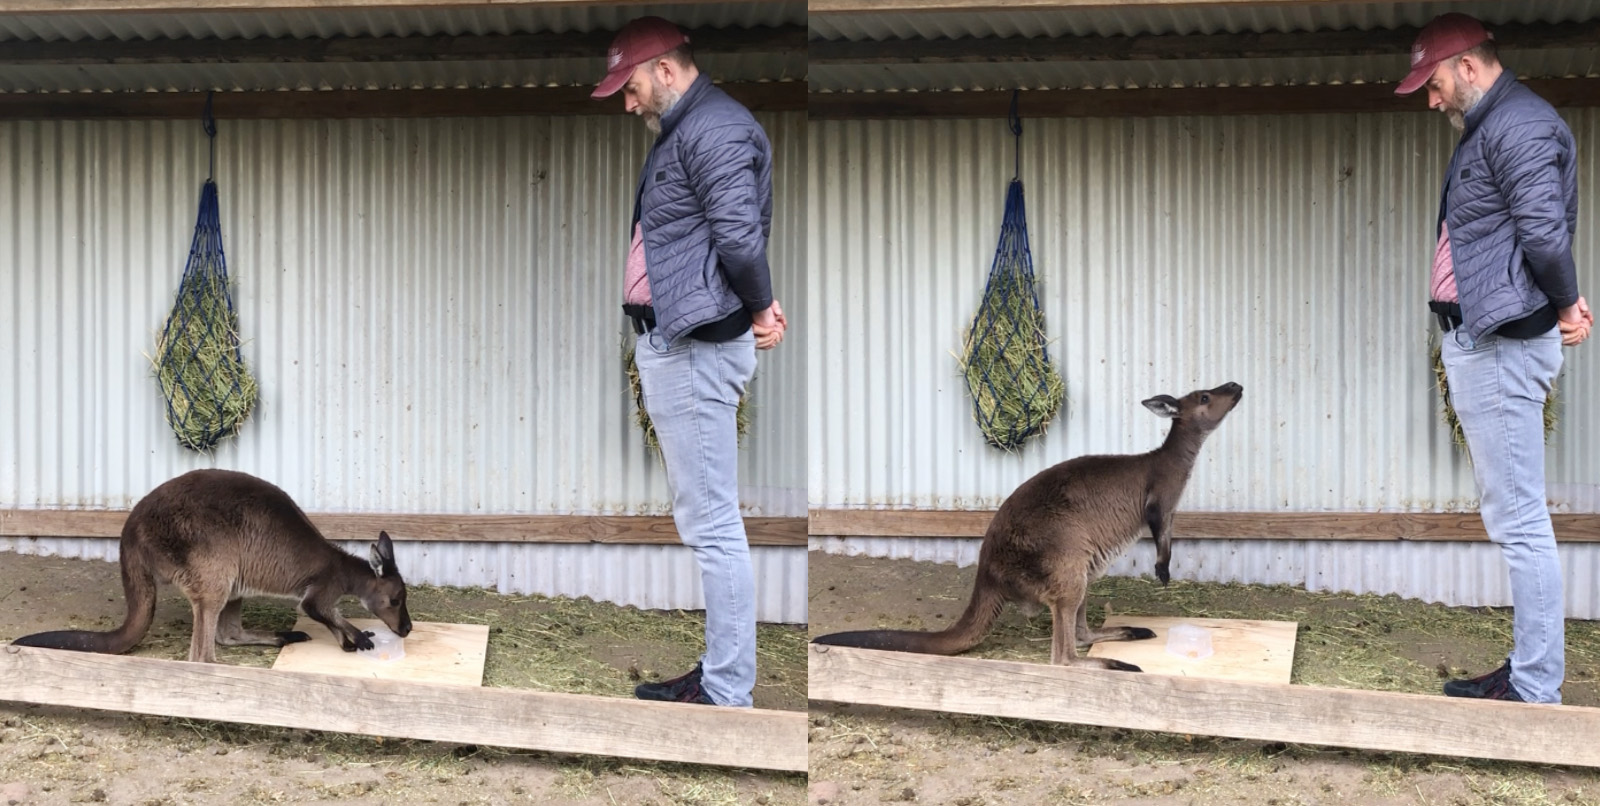 A kangaroo displays gaze alternation between the transparent box with food inside it and with a human.